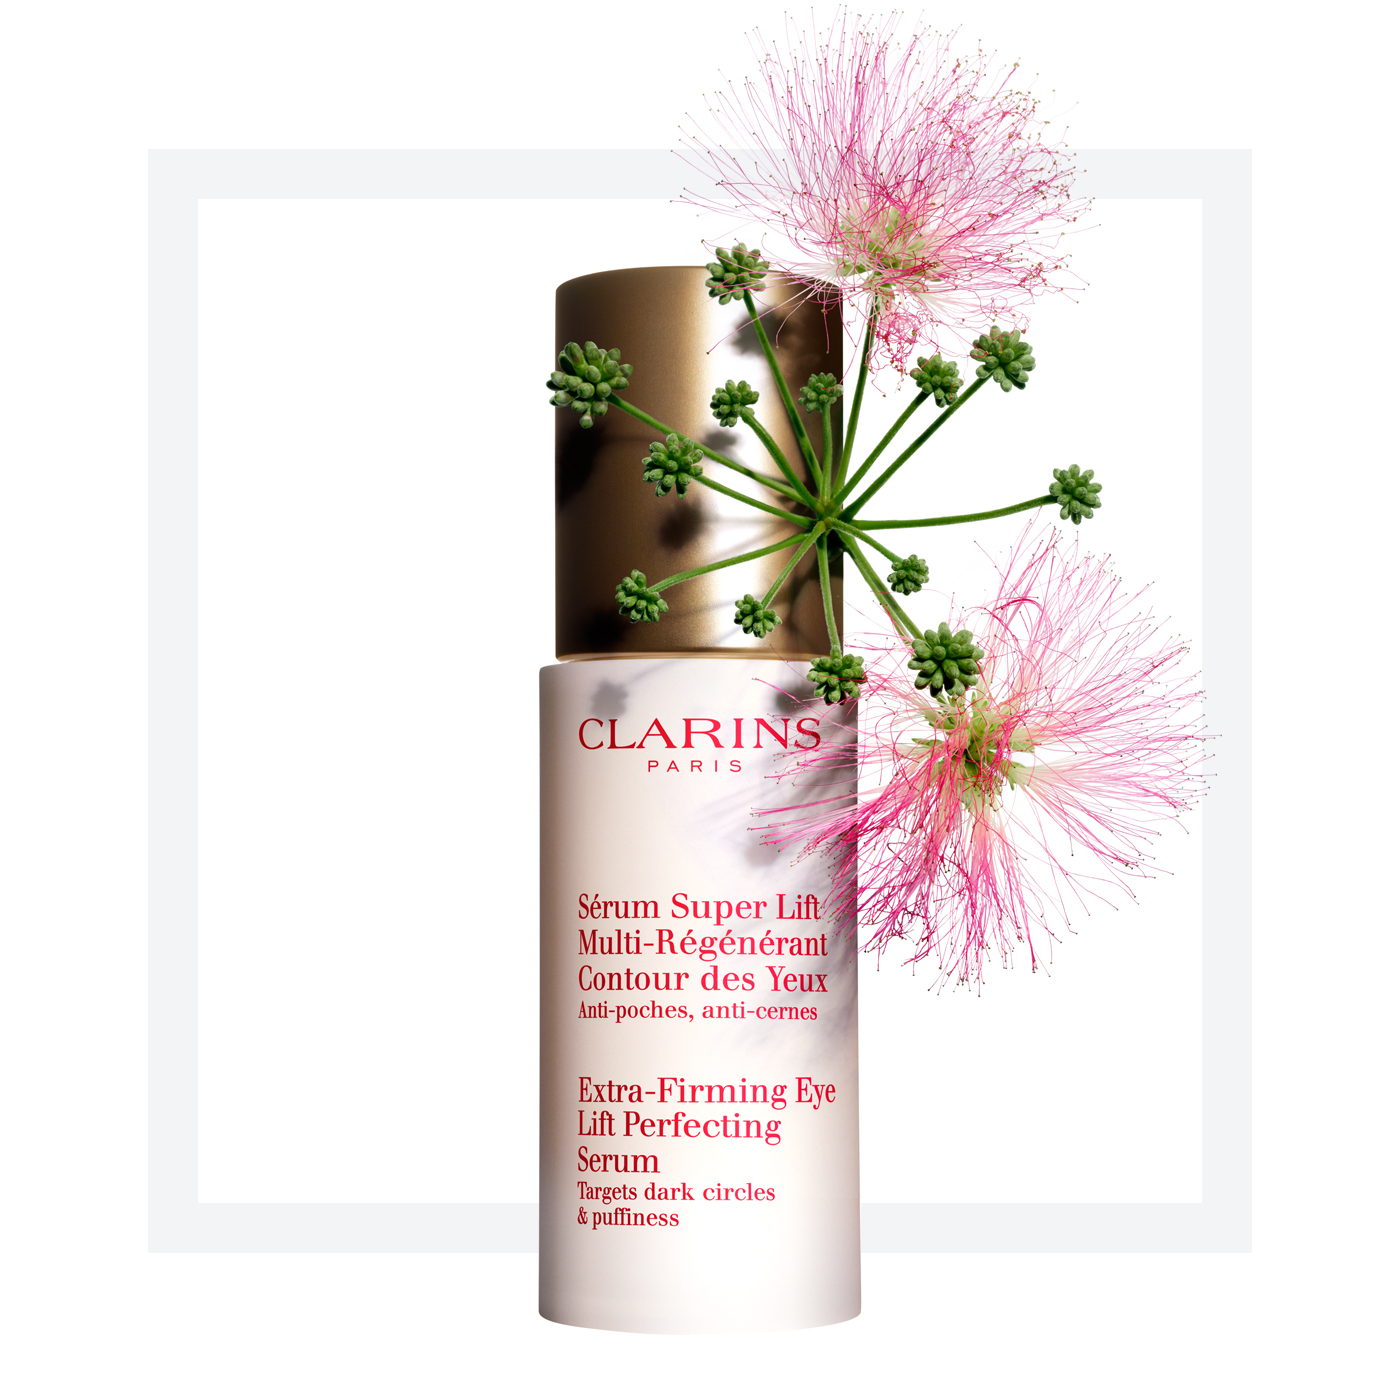 Extra-Firming Eye Lift Perfecting Serum by Clarins #12